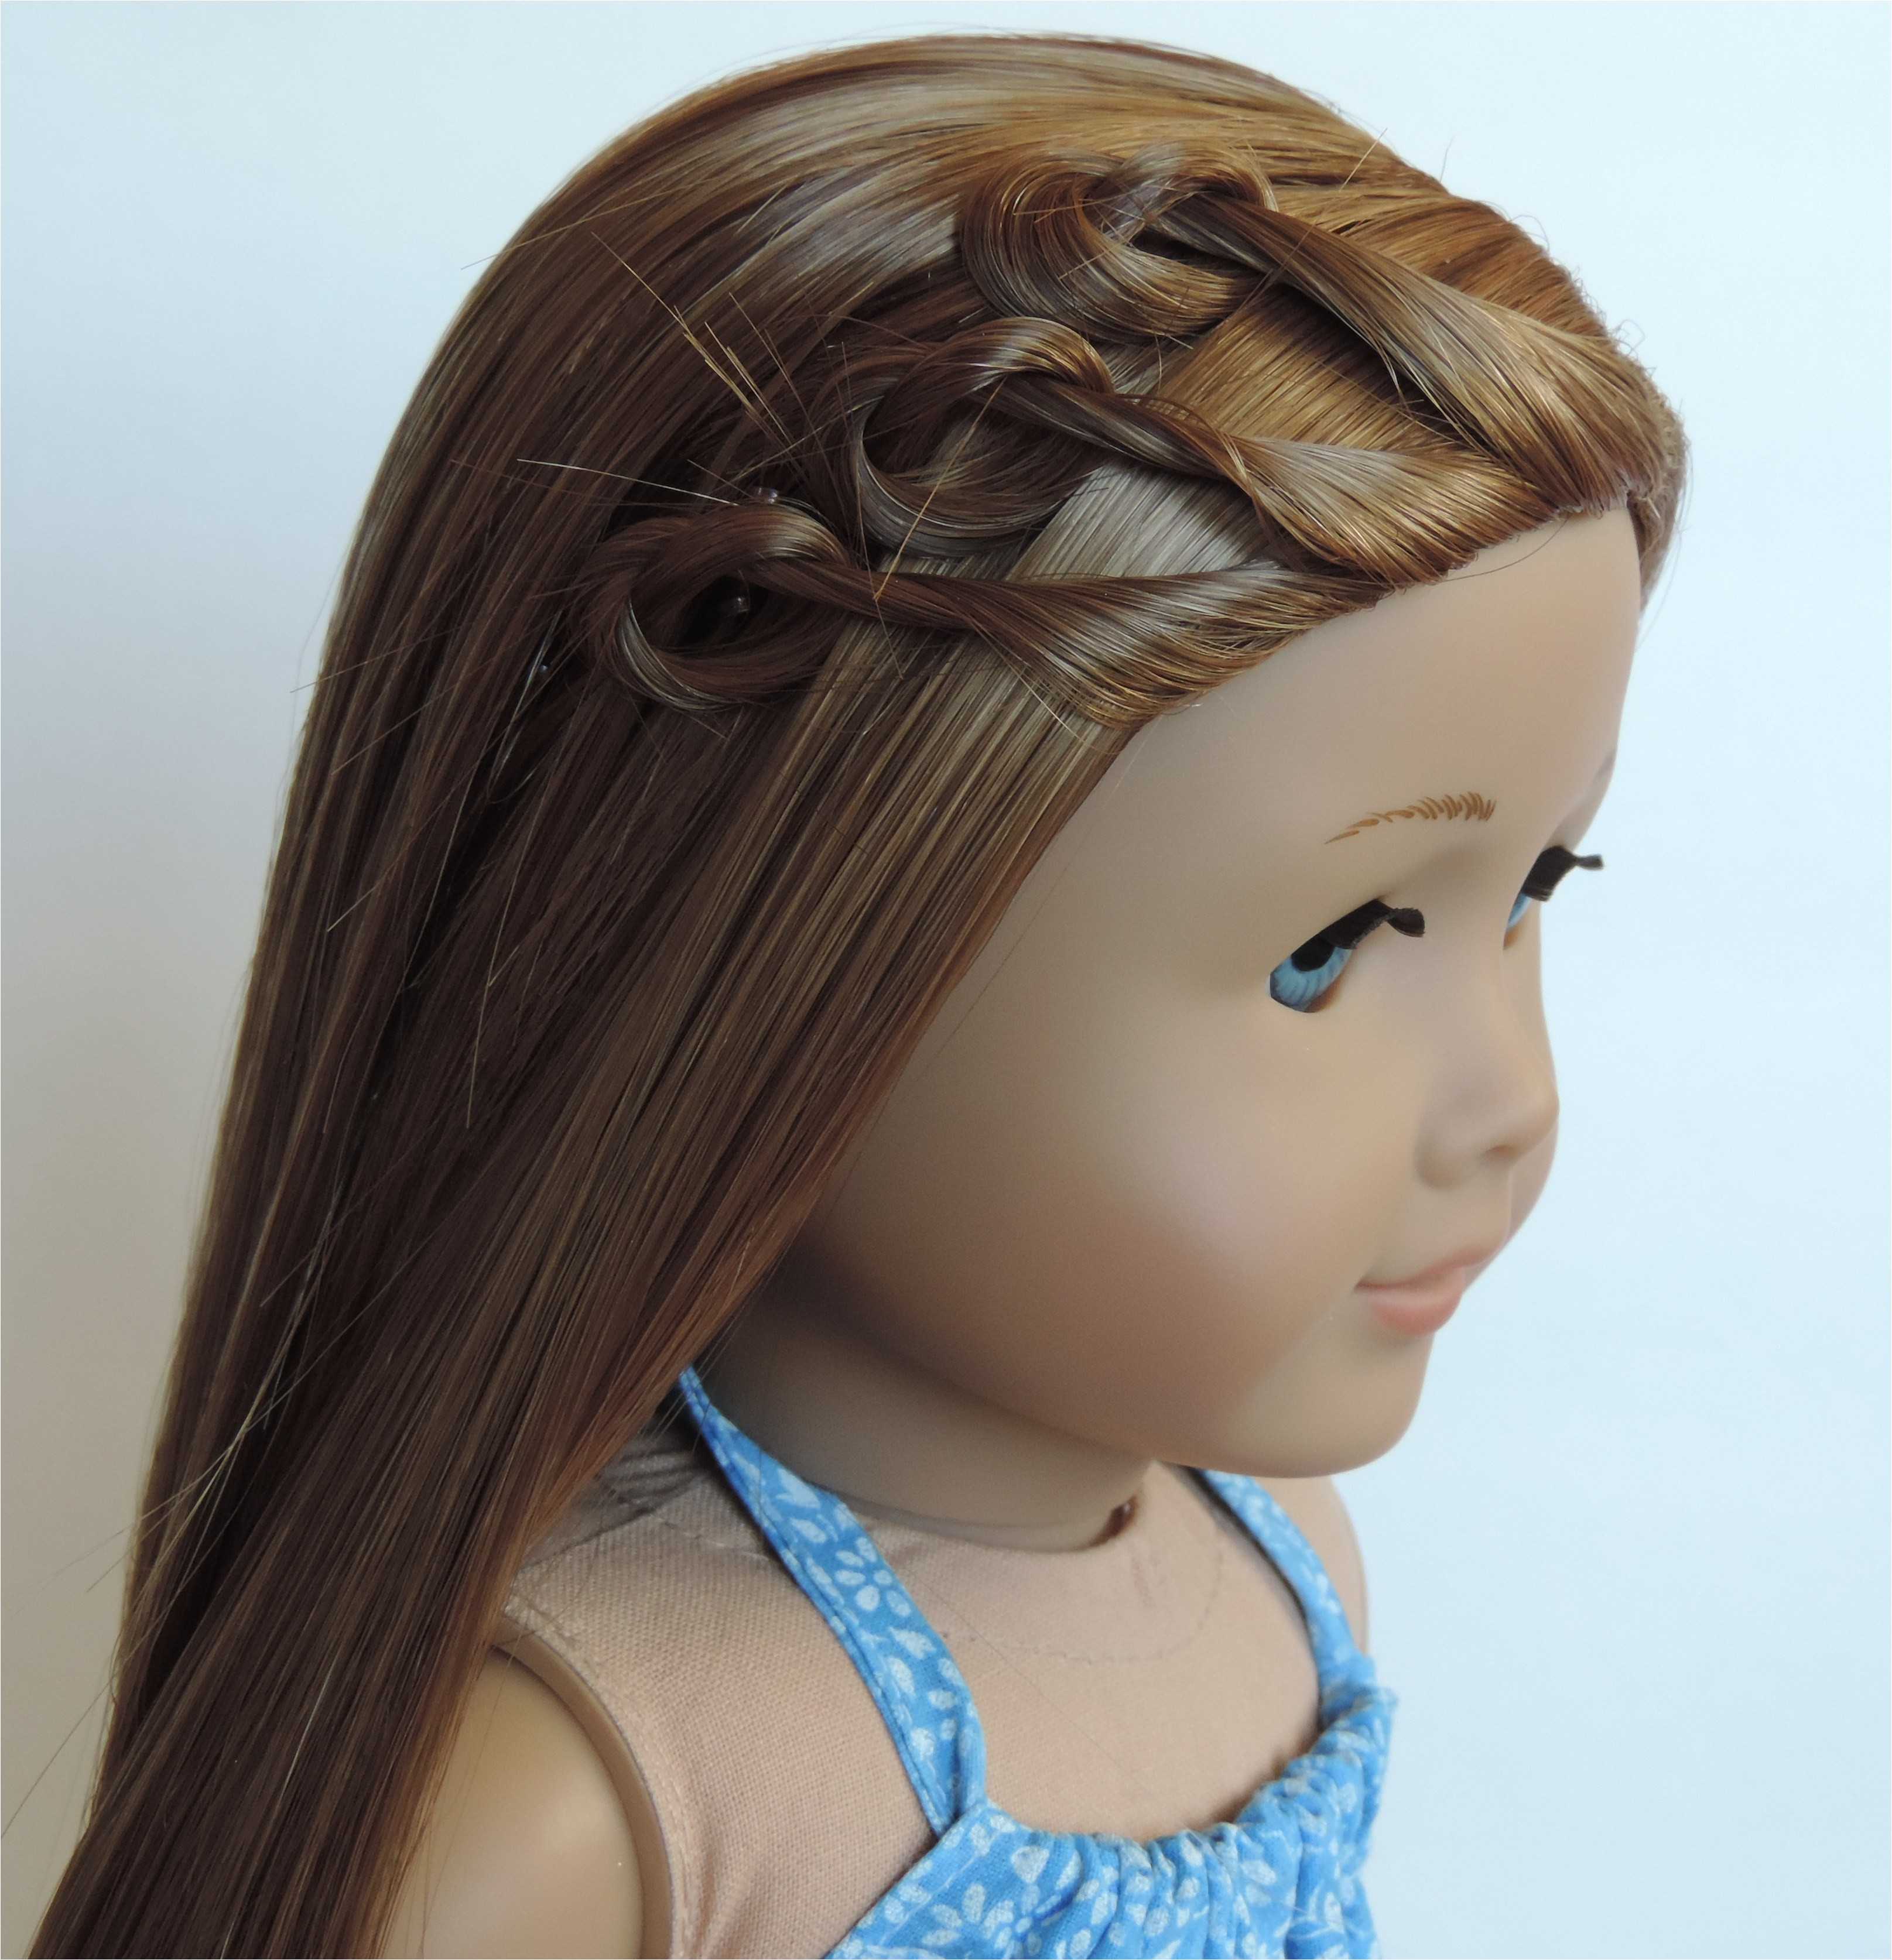 Hairstyles for American Girl Dolls with Curly Hair Beautiful Best American Girl Doll Hairstyles Image Collection